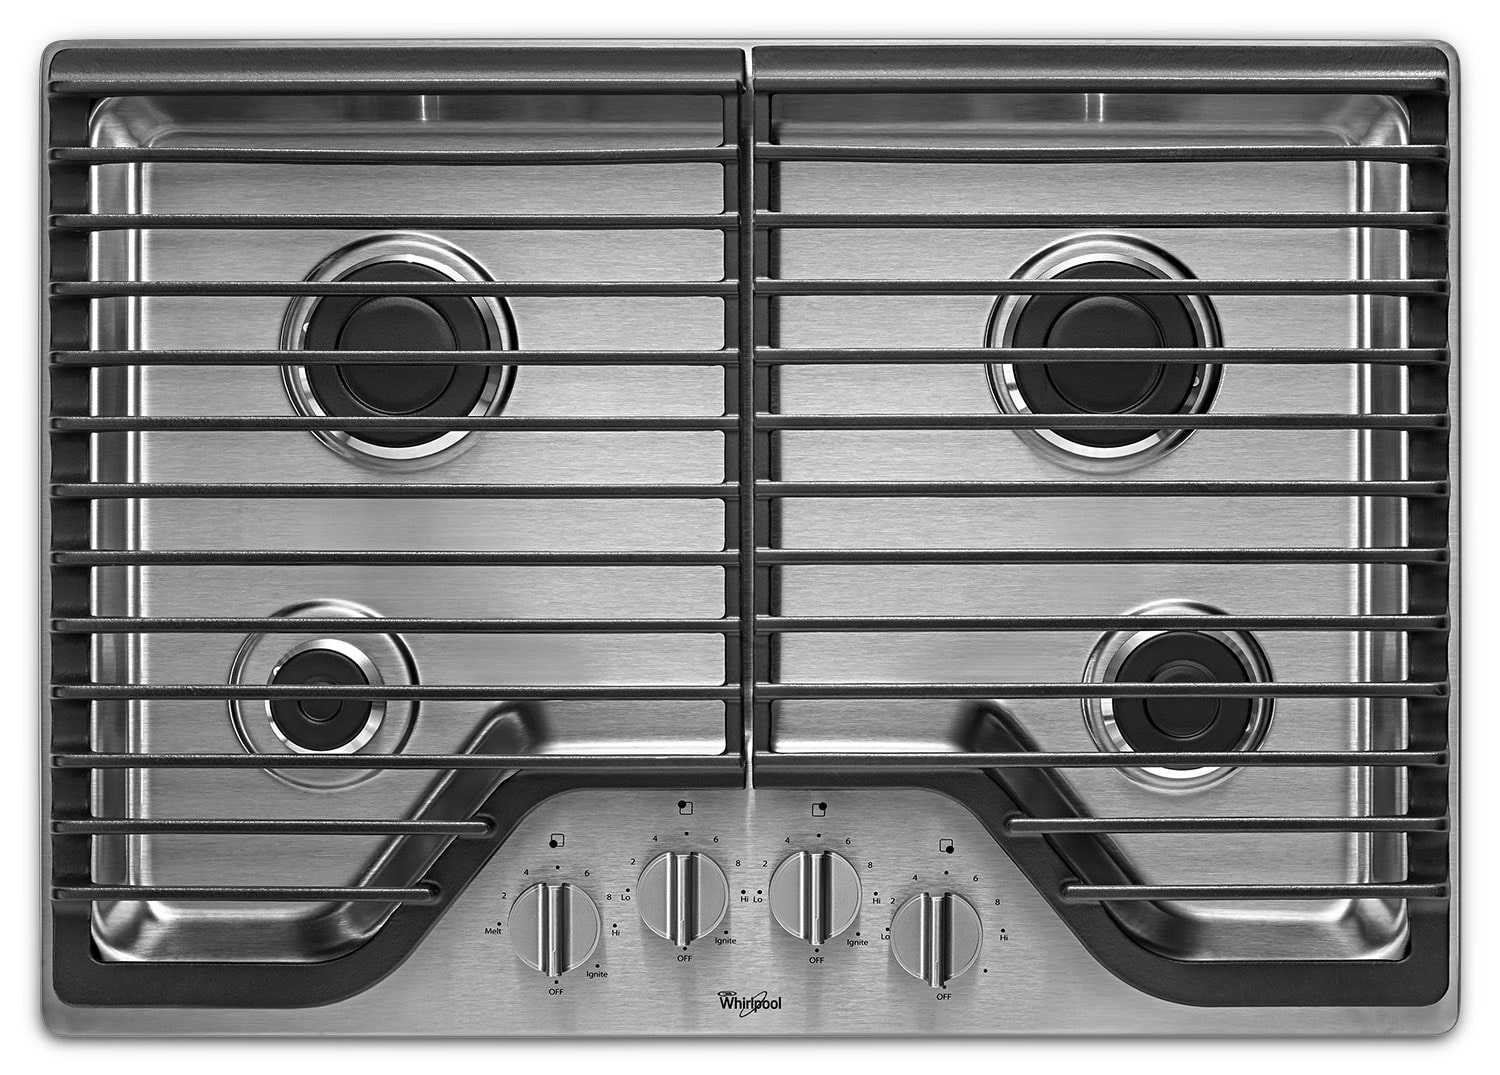 Cooking Products - Whirlpool Stainless Steel Gas Cooktop - WCG51US0DS